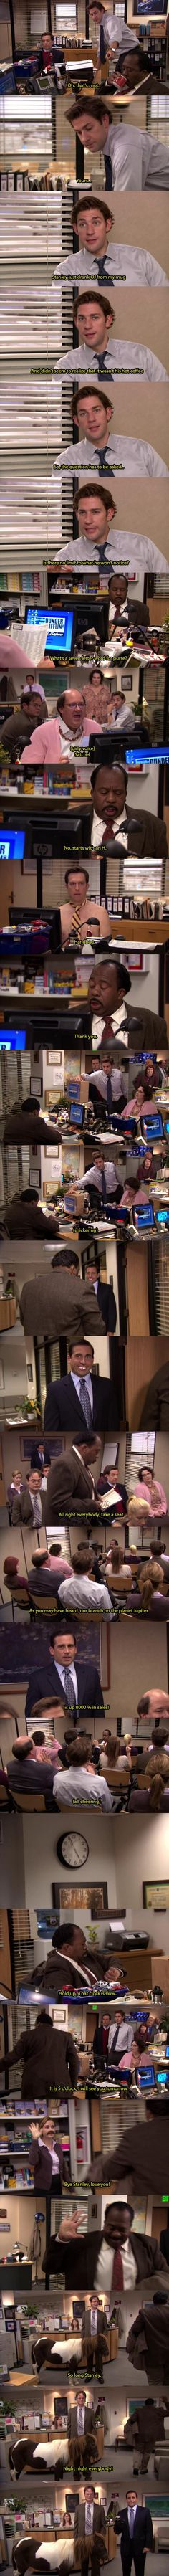 The Office has some funnies.